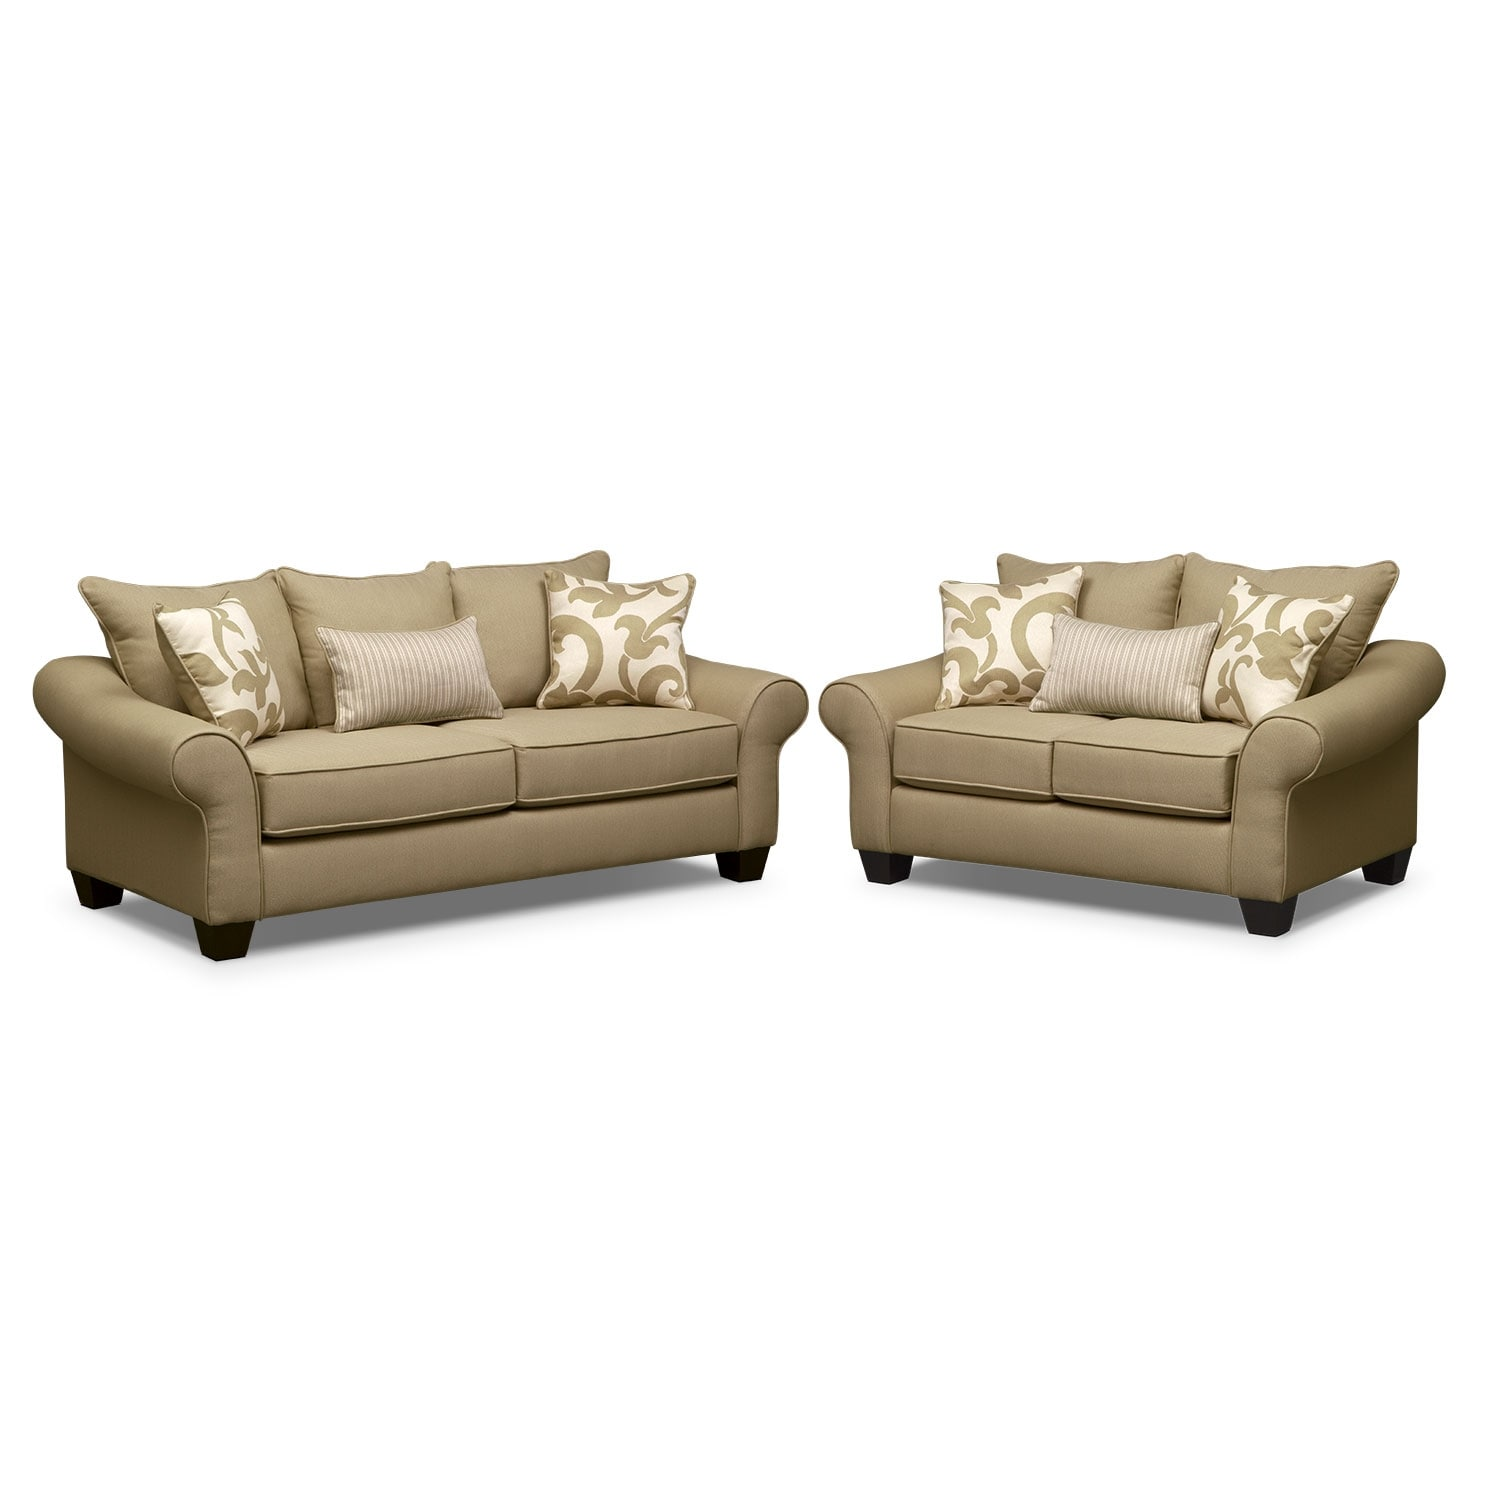 Living Room Furniture - Colette Khaki 2 Pc. Sleeper Living Room with Memory Foam Mattress